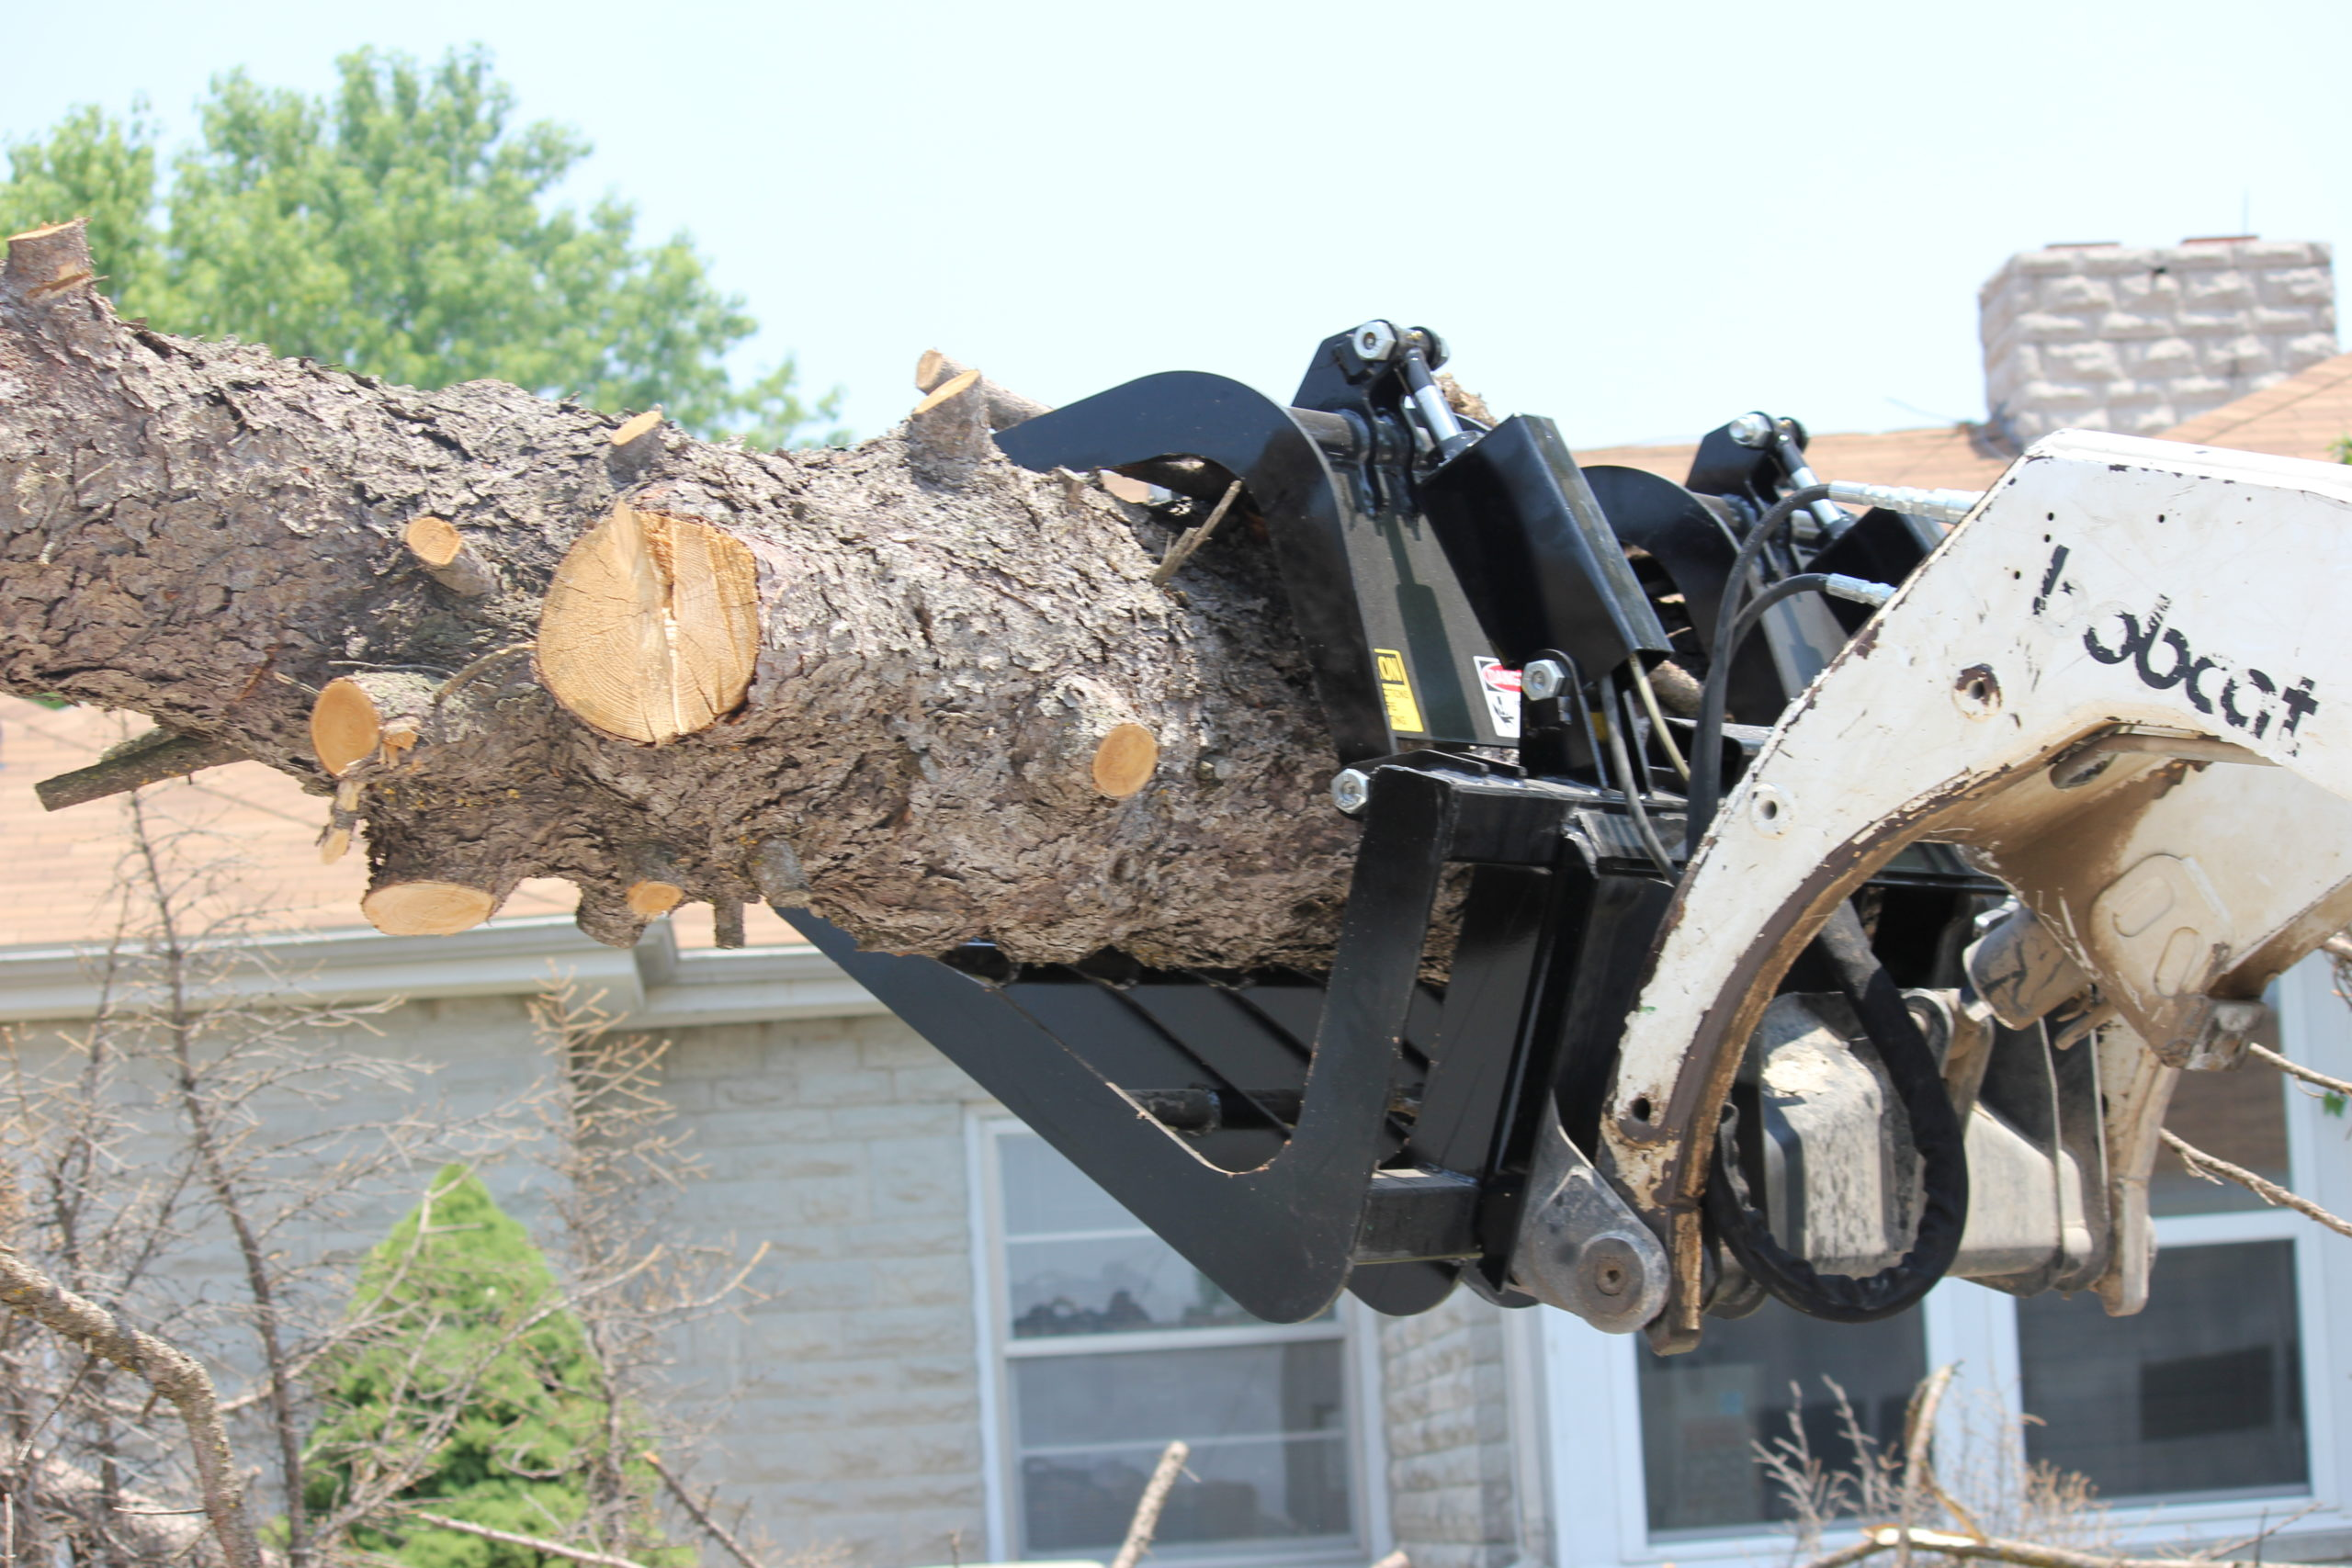 Brushboss Grapple lifting a large tree